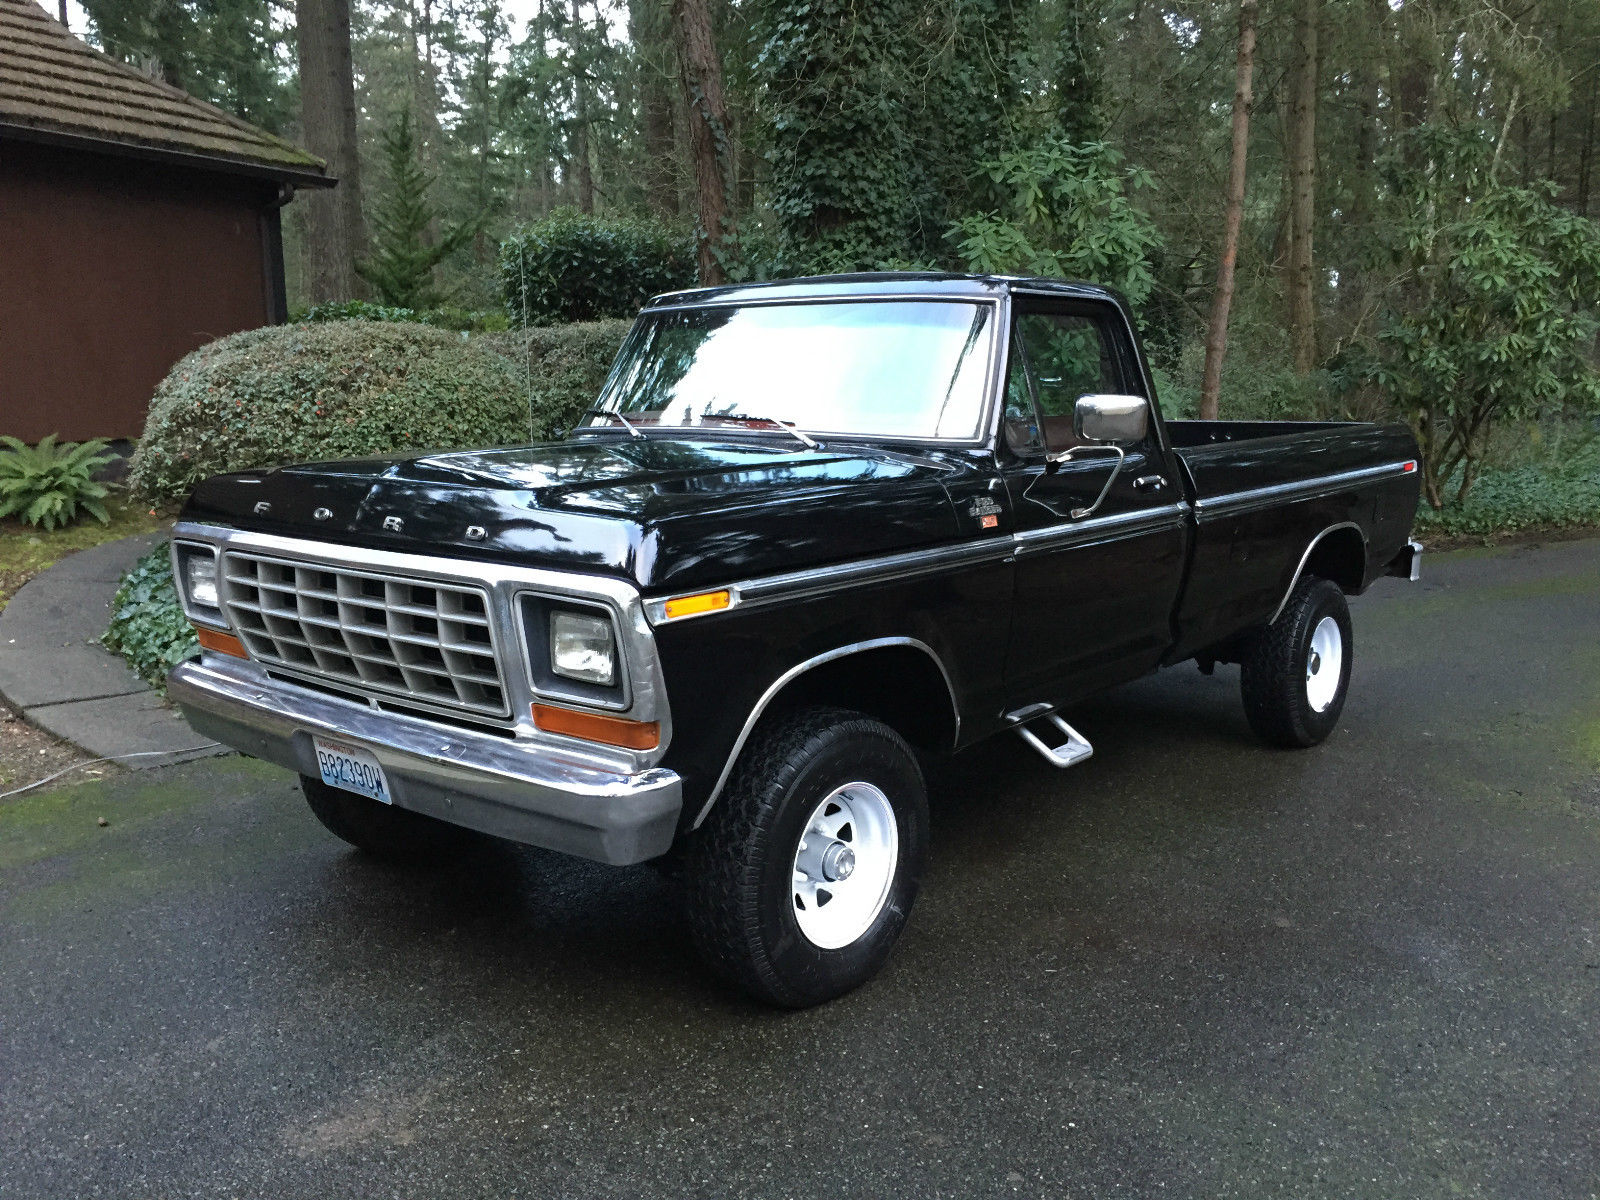 1978 ford f150 ranger xlt 4x4 short bed amazing condition 100 rust free classic ford f 150. Black Bedroom Furniture Sets. Home Design Ideas